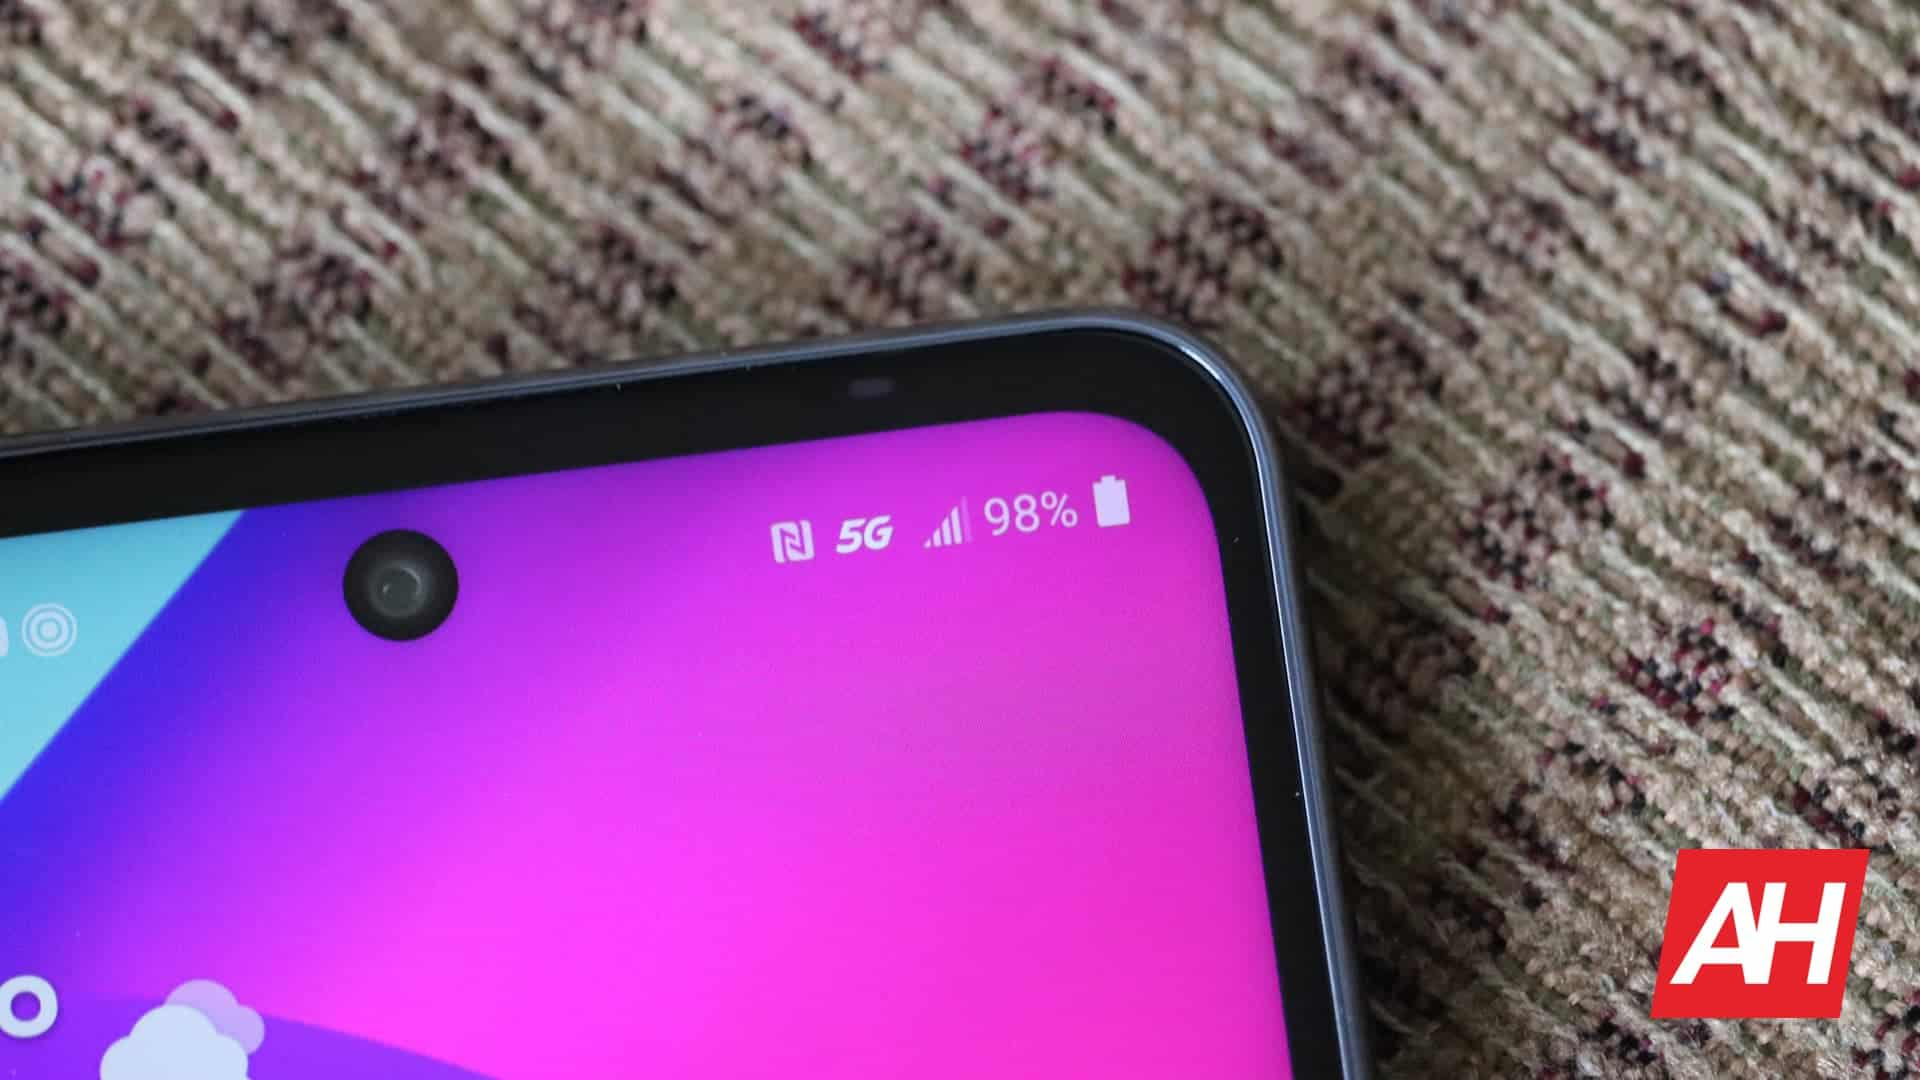 03 LG K92 5G Review Connectivity DG AH 2020